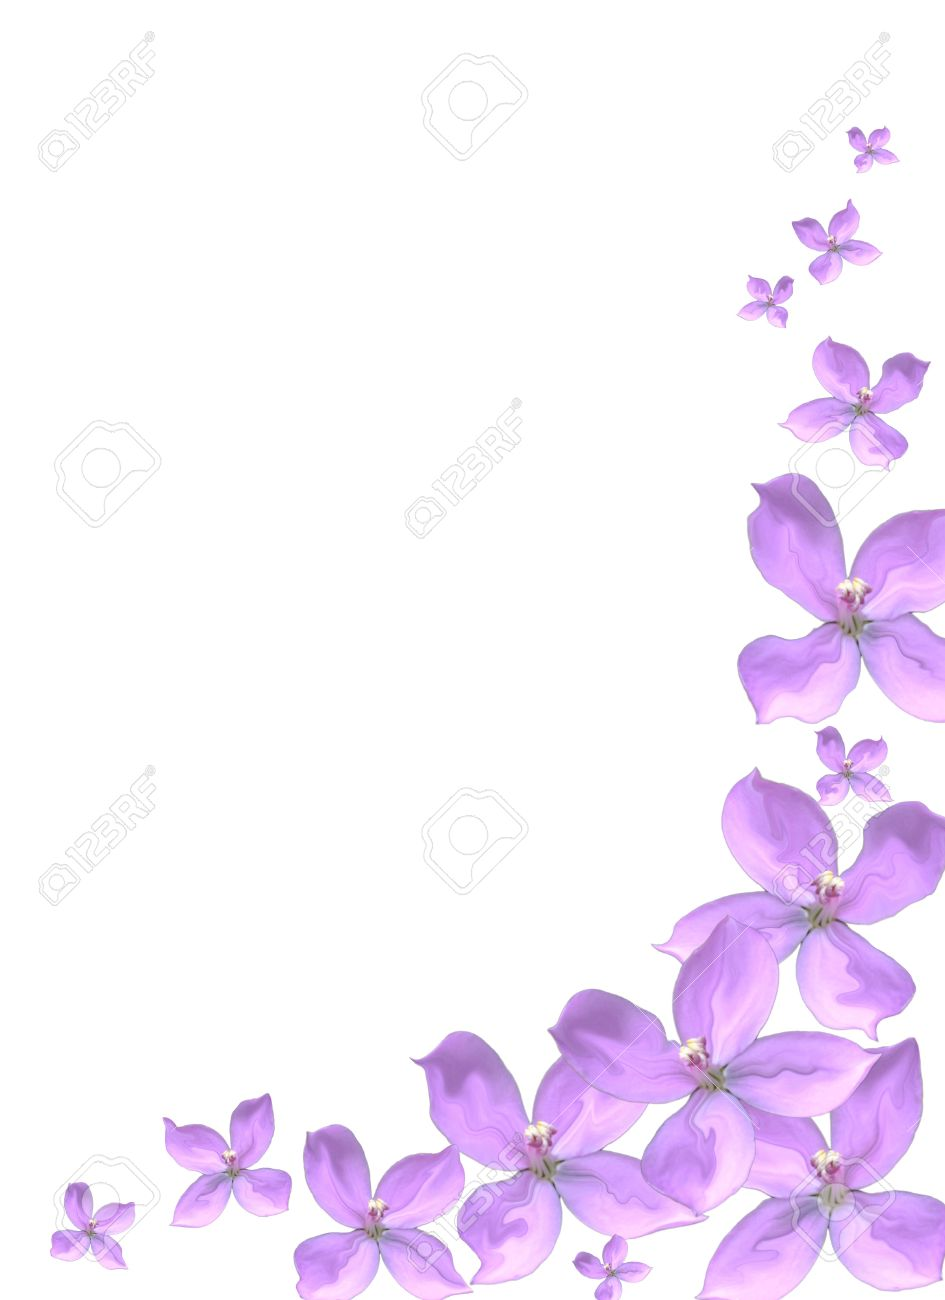 , purple flowers stock vector illustration and royalty free, Natural flower